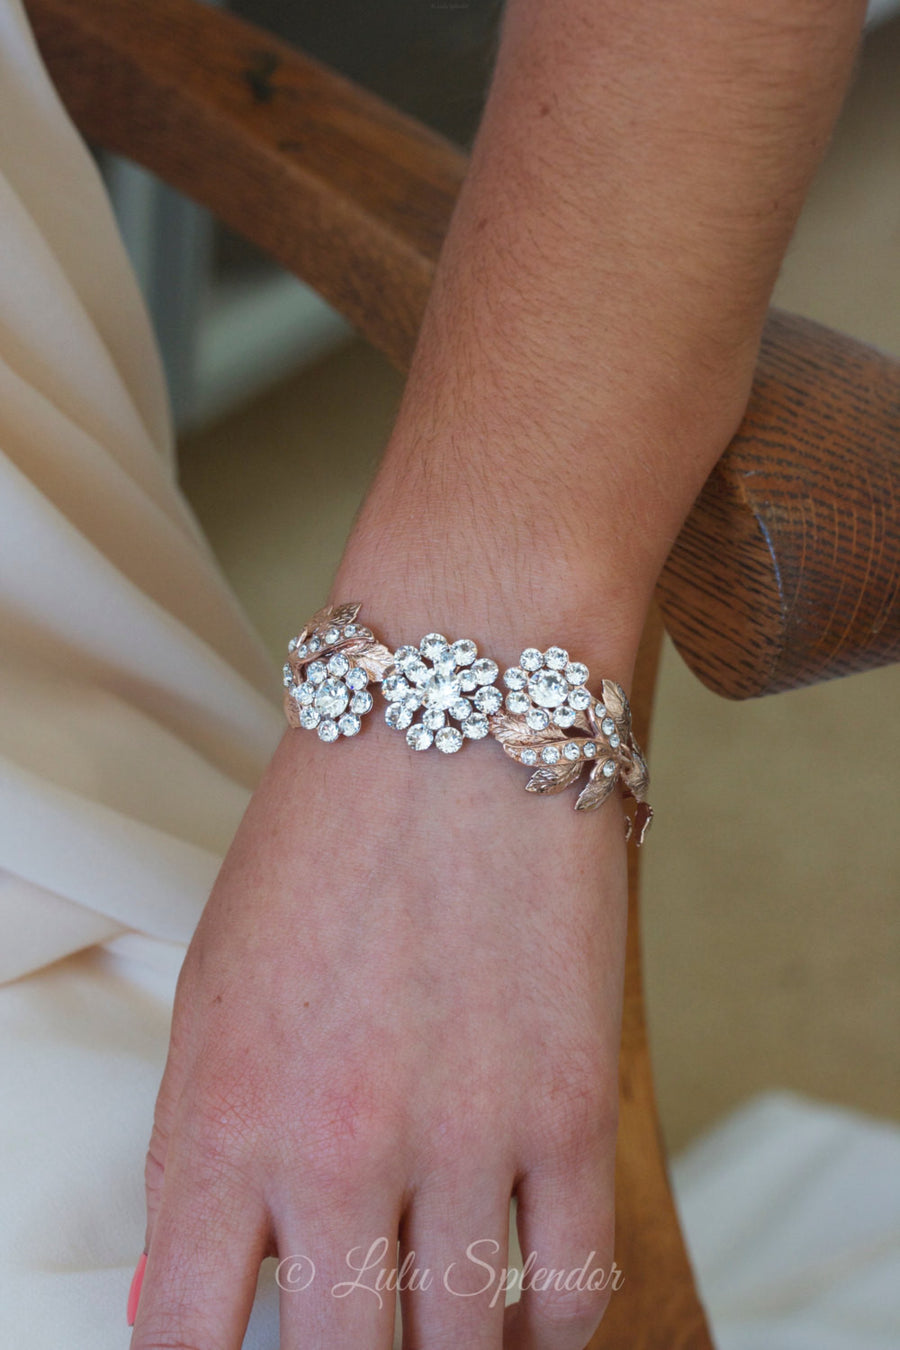 MIER WEDDING BRACELET - Lulu Splendor